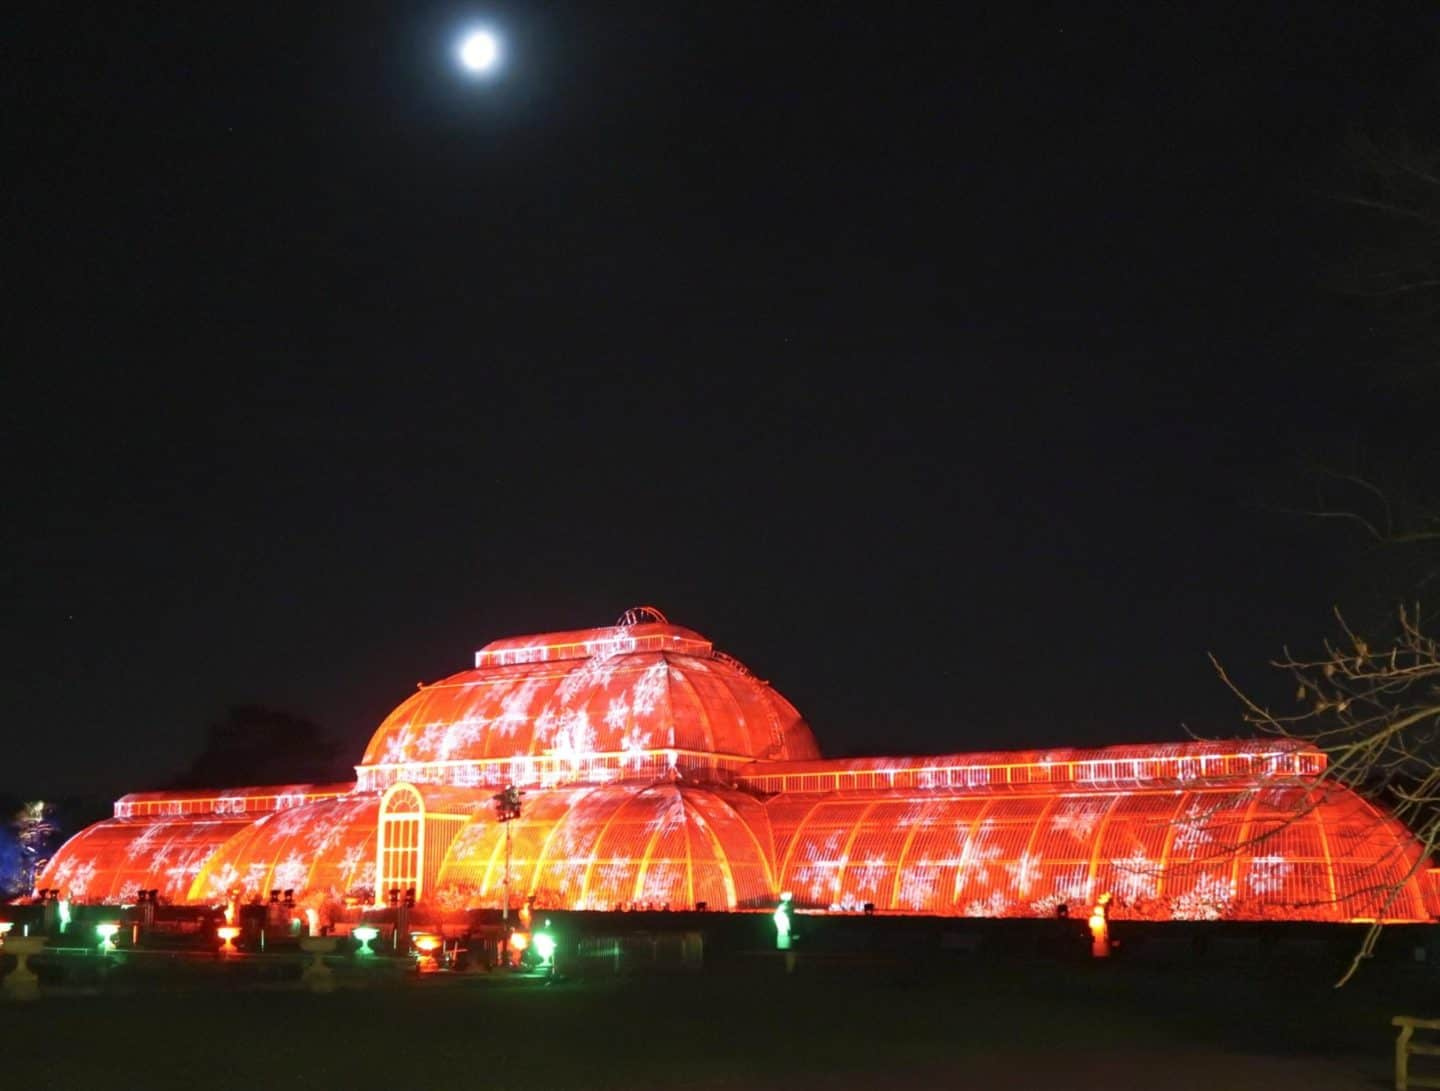 kew gardens at christmas light display